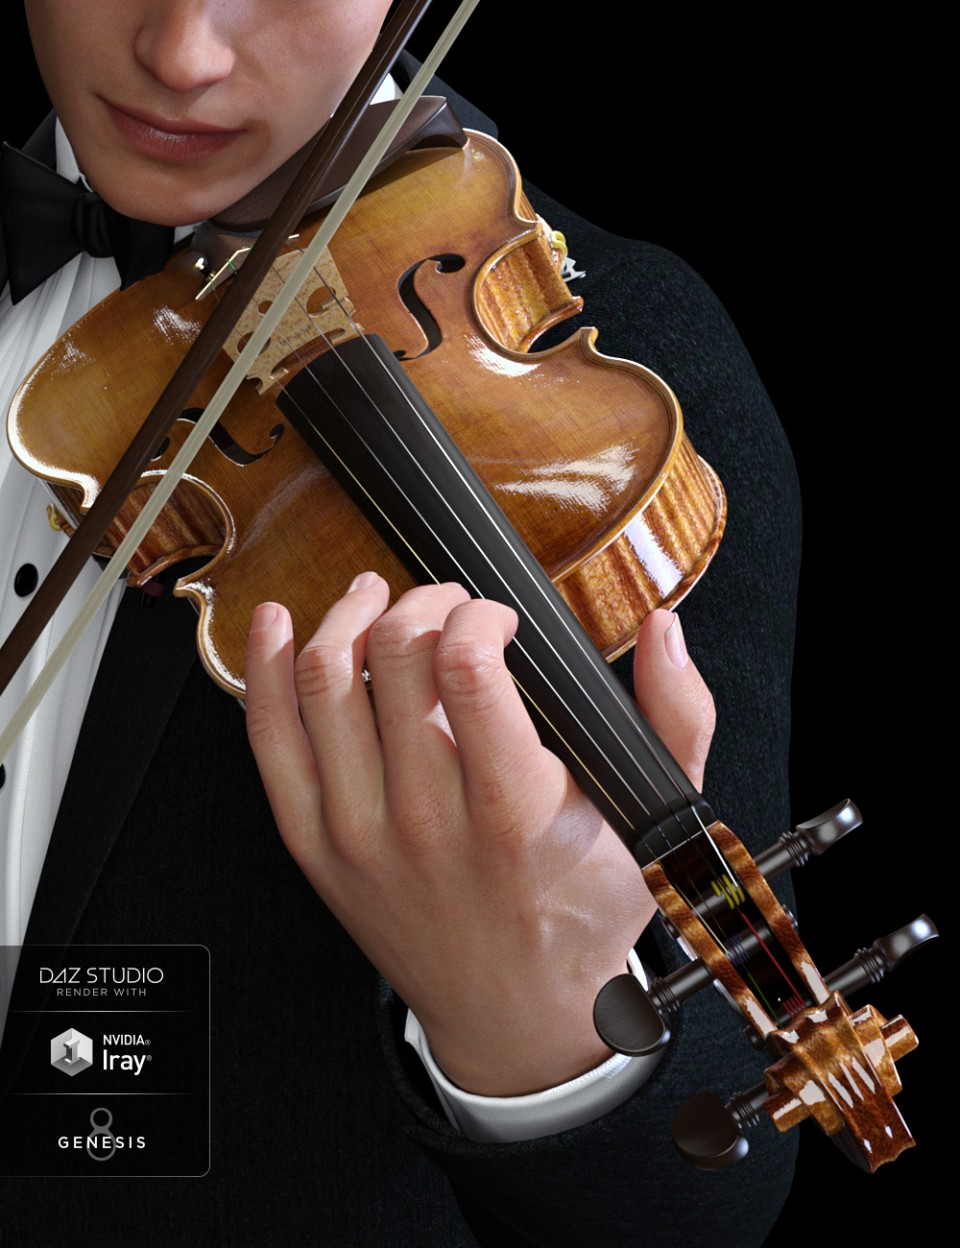 HD Violin and Poses for Genesis 3 and 8_DAZ3D下载站